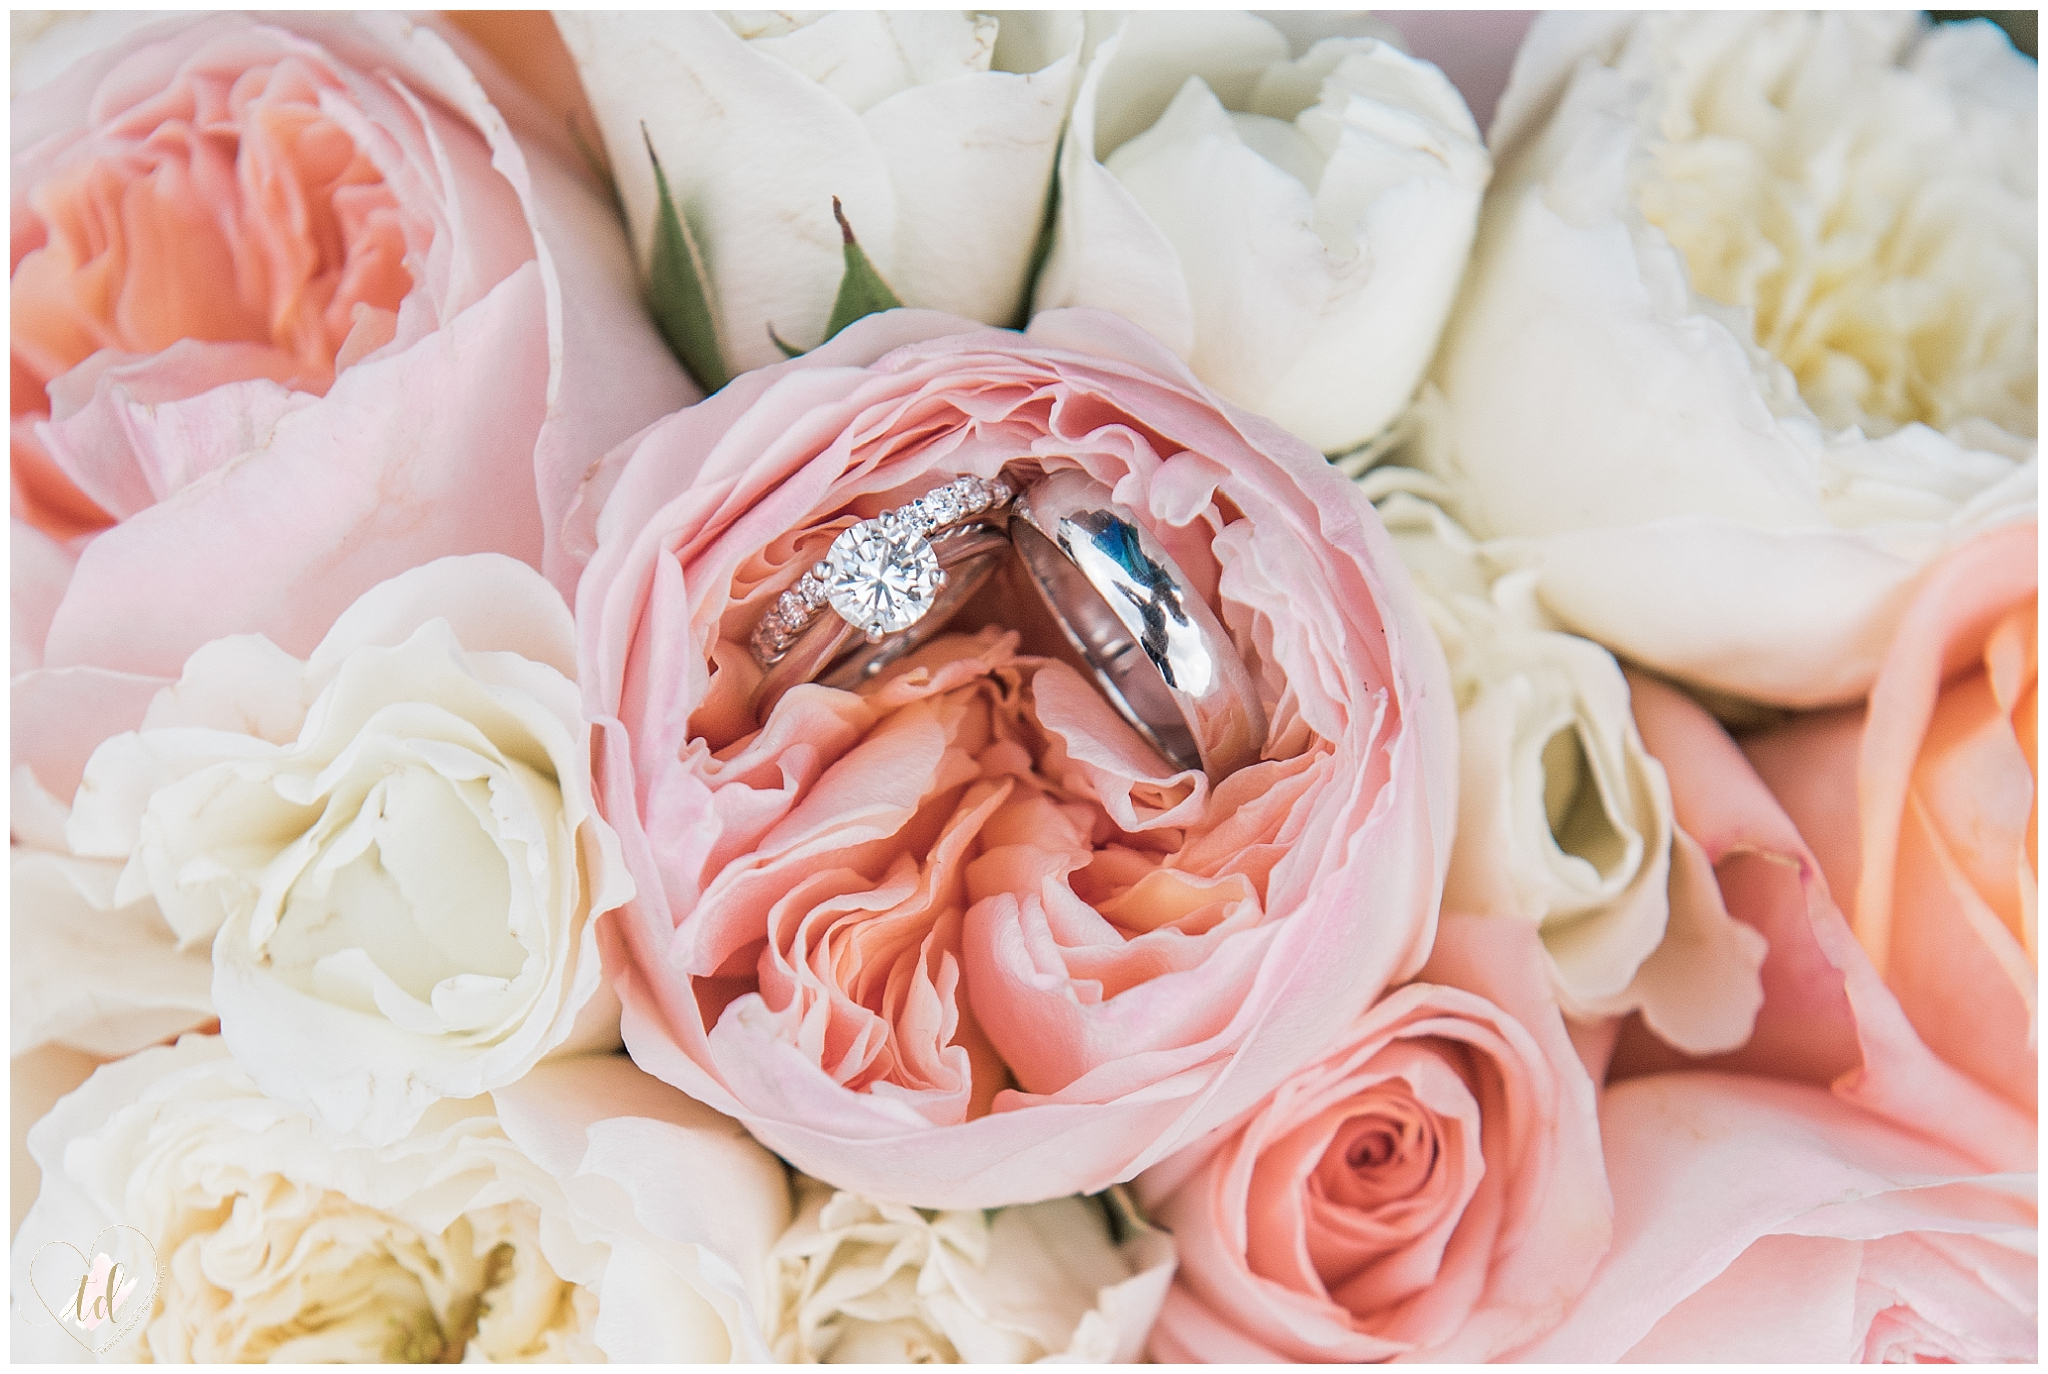 Wedding Flowers with Wedding Rings